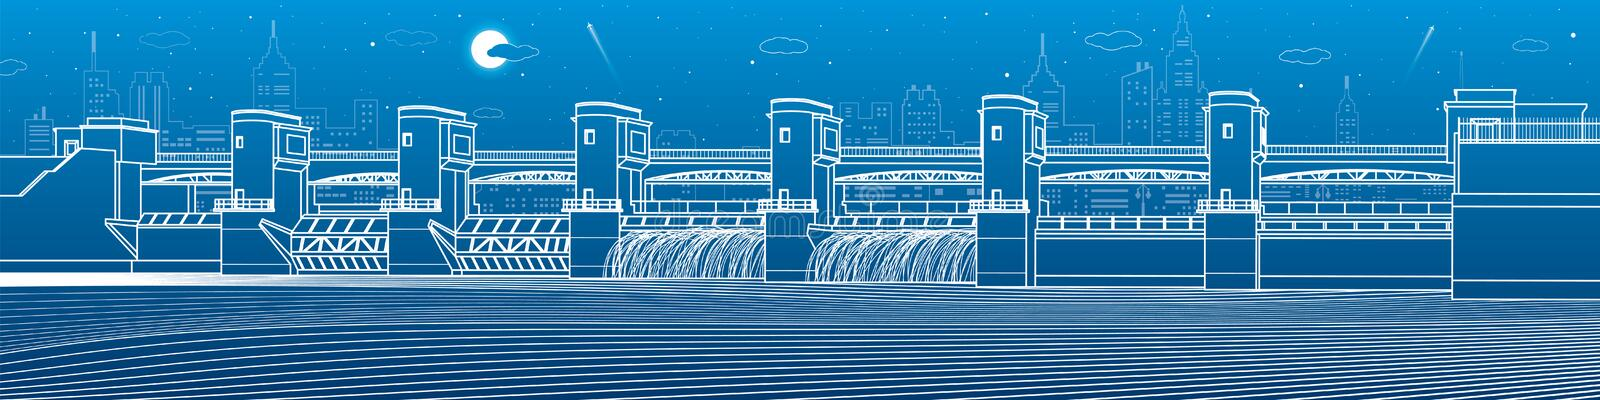 Hydro power plant. River Dam. Energy station. Water power. City infrastructure industrial illustration panorama. White lines on bl. Ue background. Vector design royalty free illustration